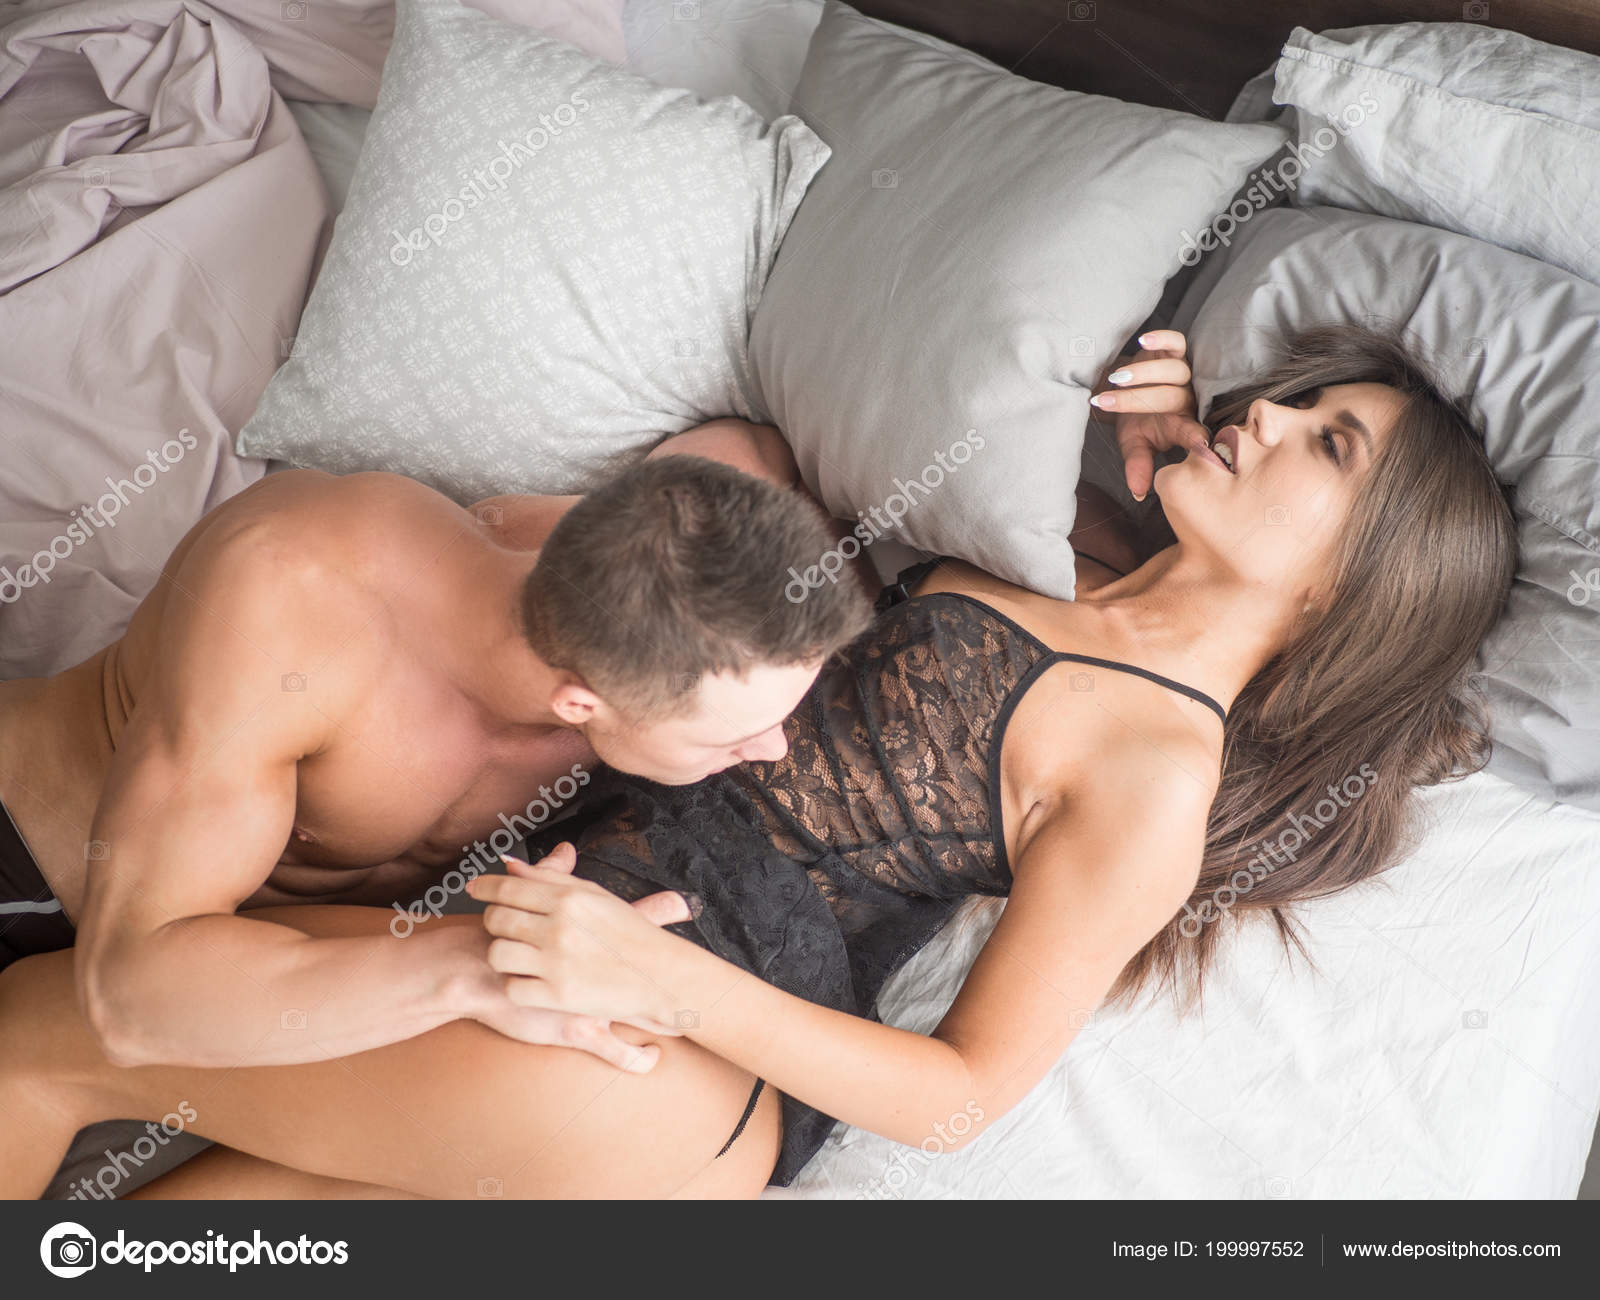 Teens with hairy pussy fucking guys